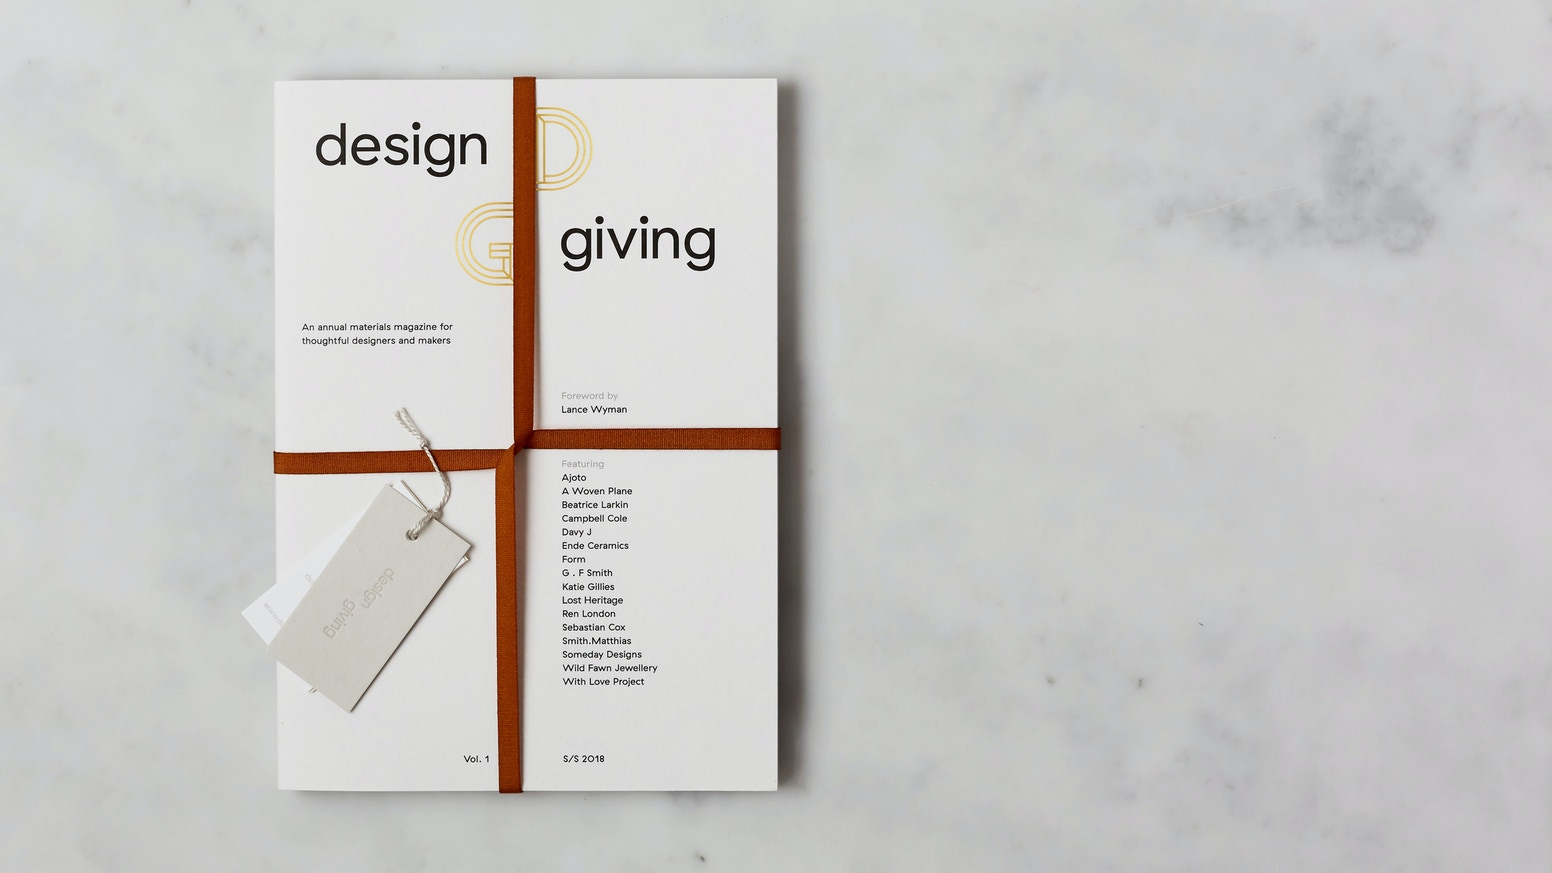 Design Giving is an annual print magazine celebrating well-crafted products that improve people's lives and are kinder to our planet. If you missed backing our kickstarter, there's still time to pre-order our magazine, click button below: